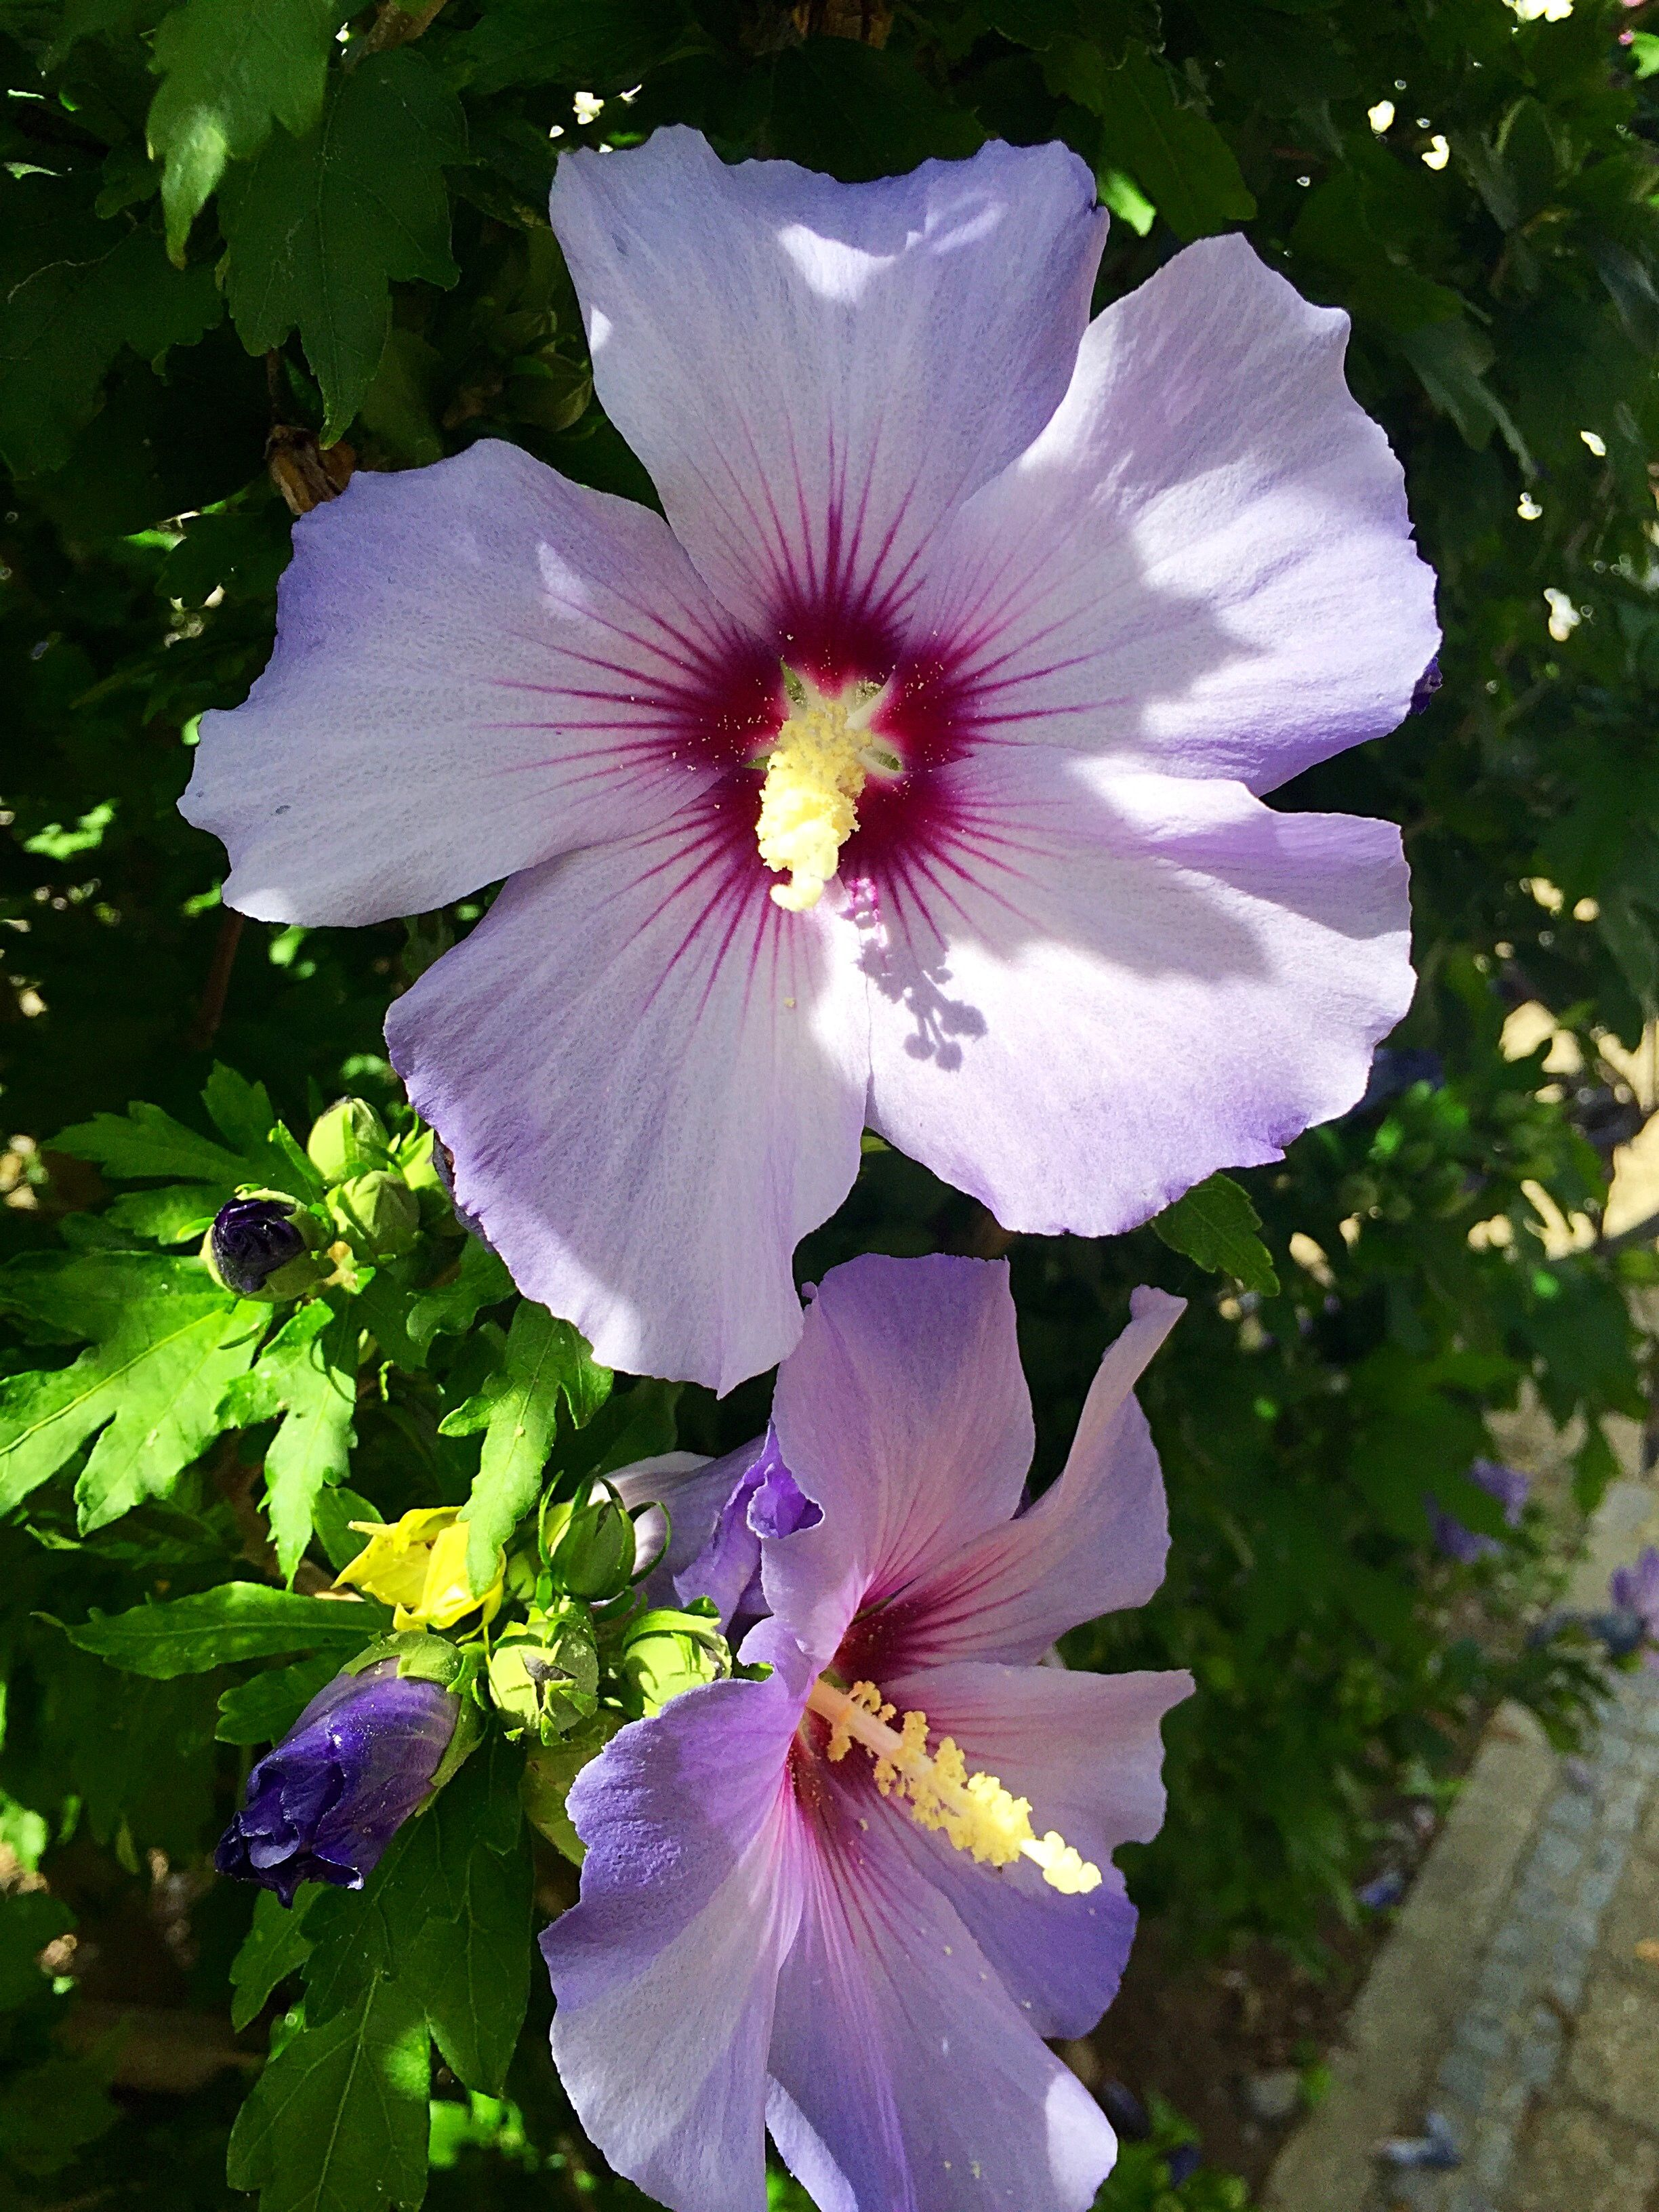 Pin By Linda Sullivan On Flowers Pinterest Flowers Hibiscus And